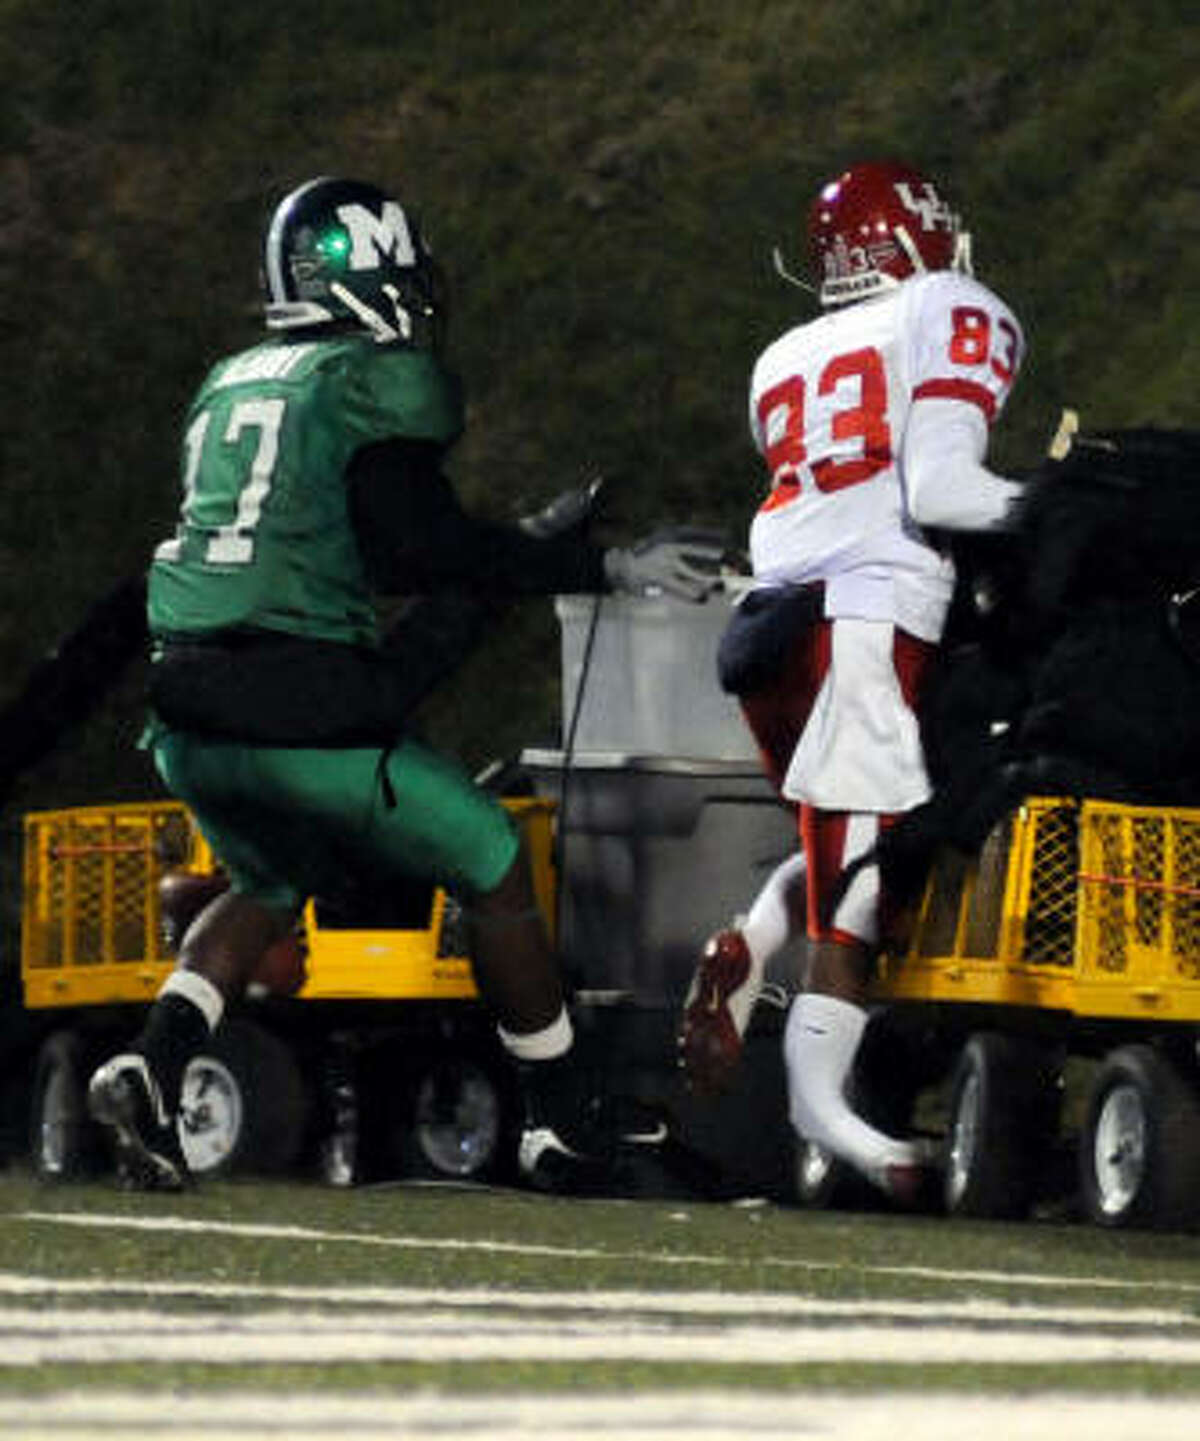 UH's Patrick Edwards breaks his leg during the game at Marshall on Tuesday.